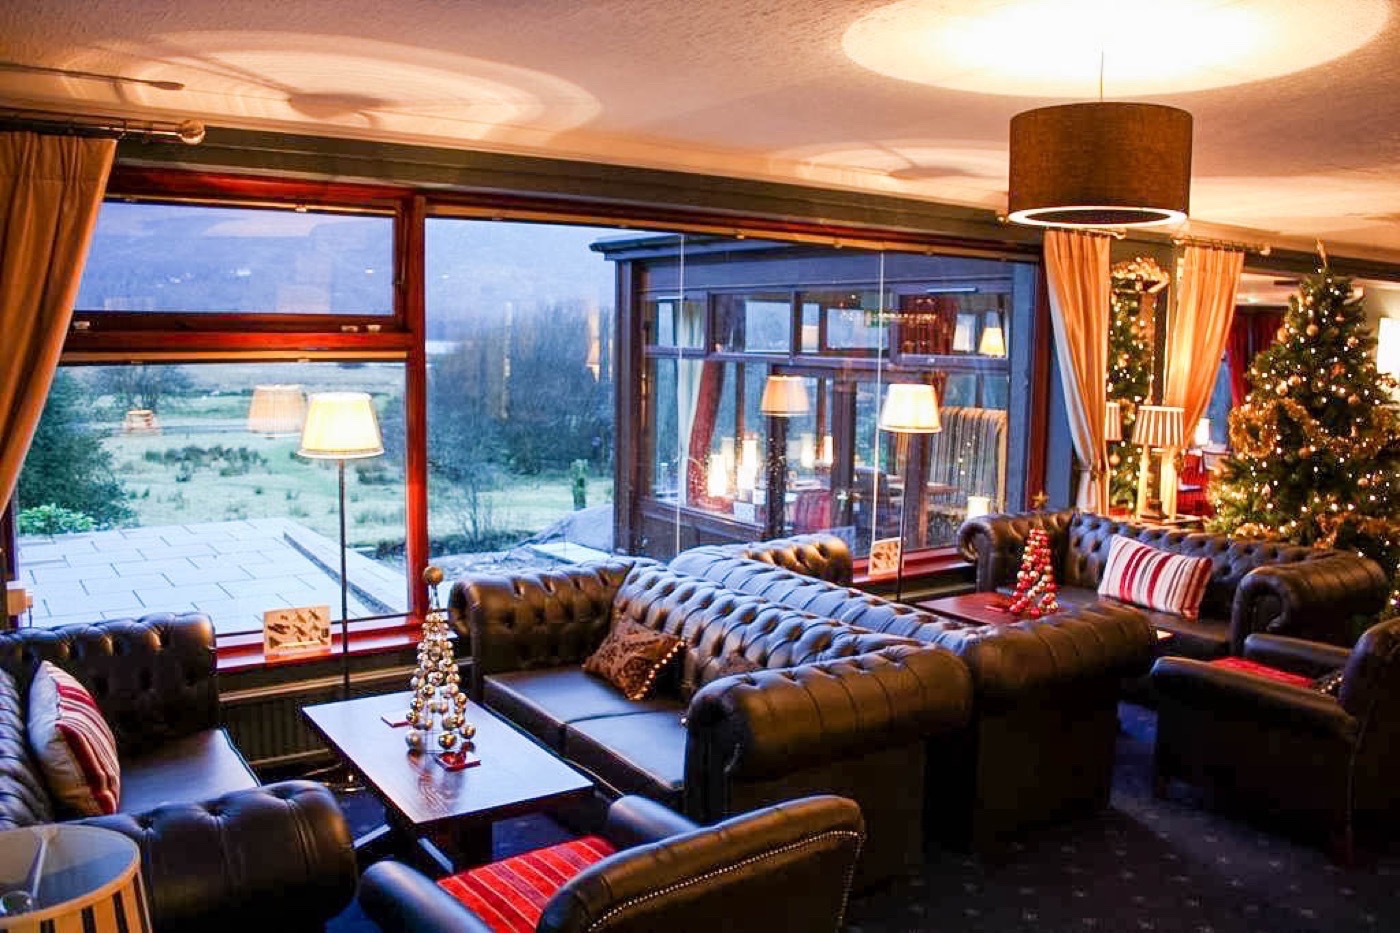 mary-mount-hotel-accommodation-derwentwater-lake-district-34_1400px.jpg